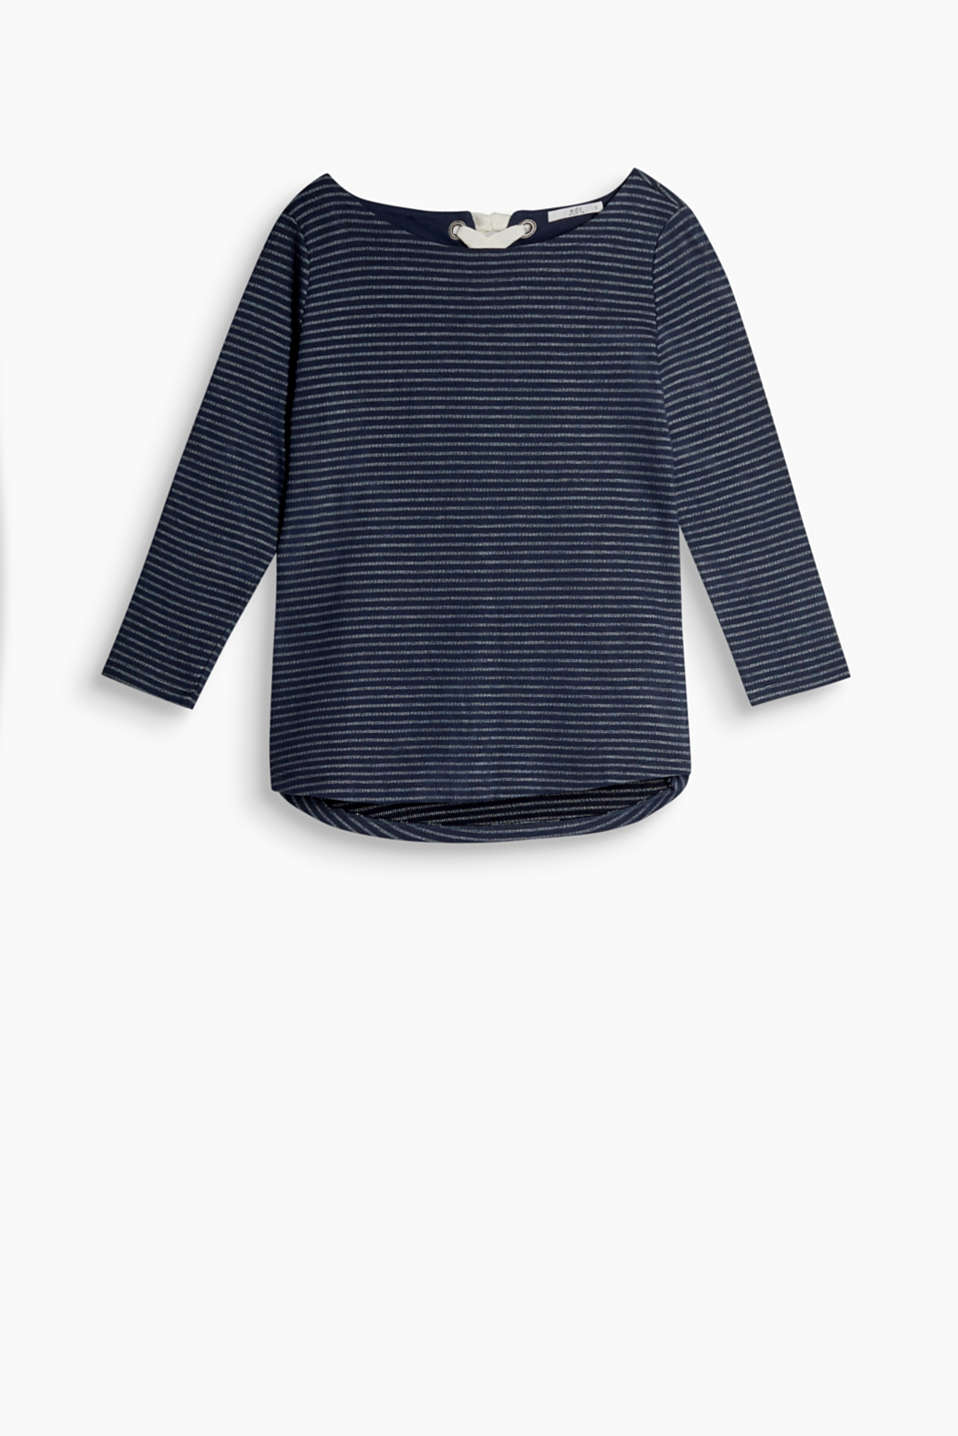 Long sleeve top made of soft blended cotton with stripes, 3/4 sleeves and decorative lacing at the back of the neck